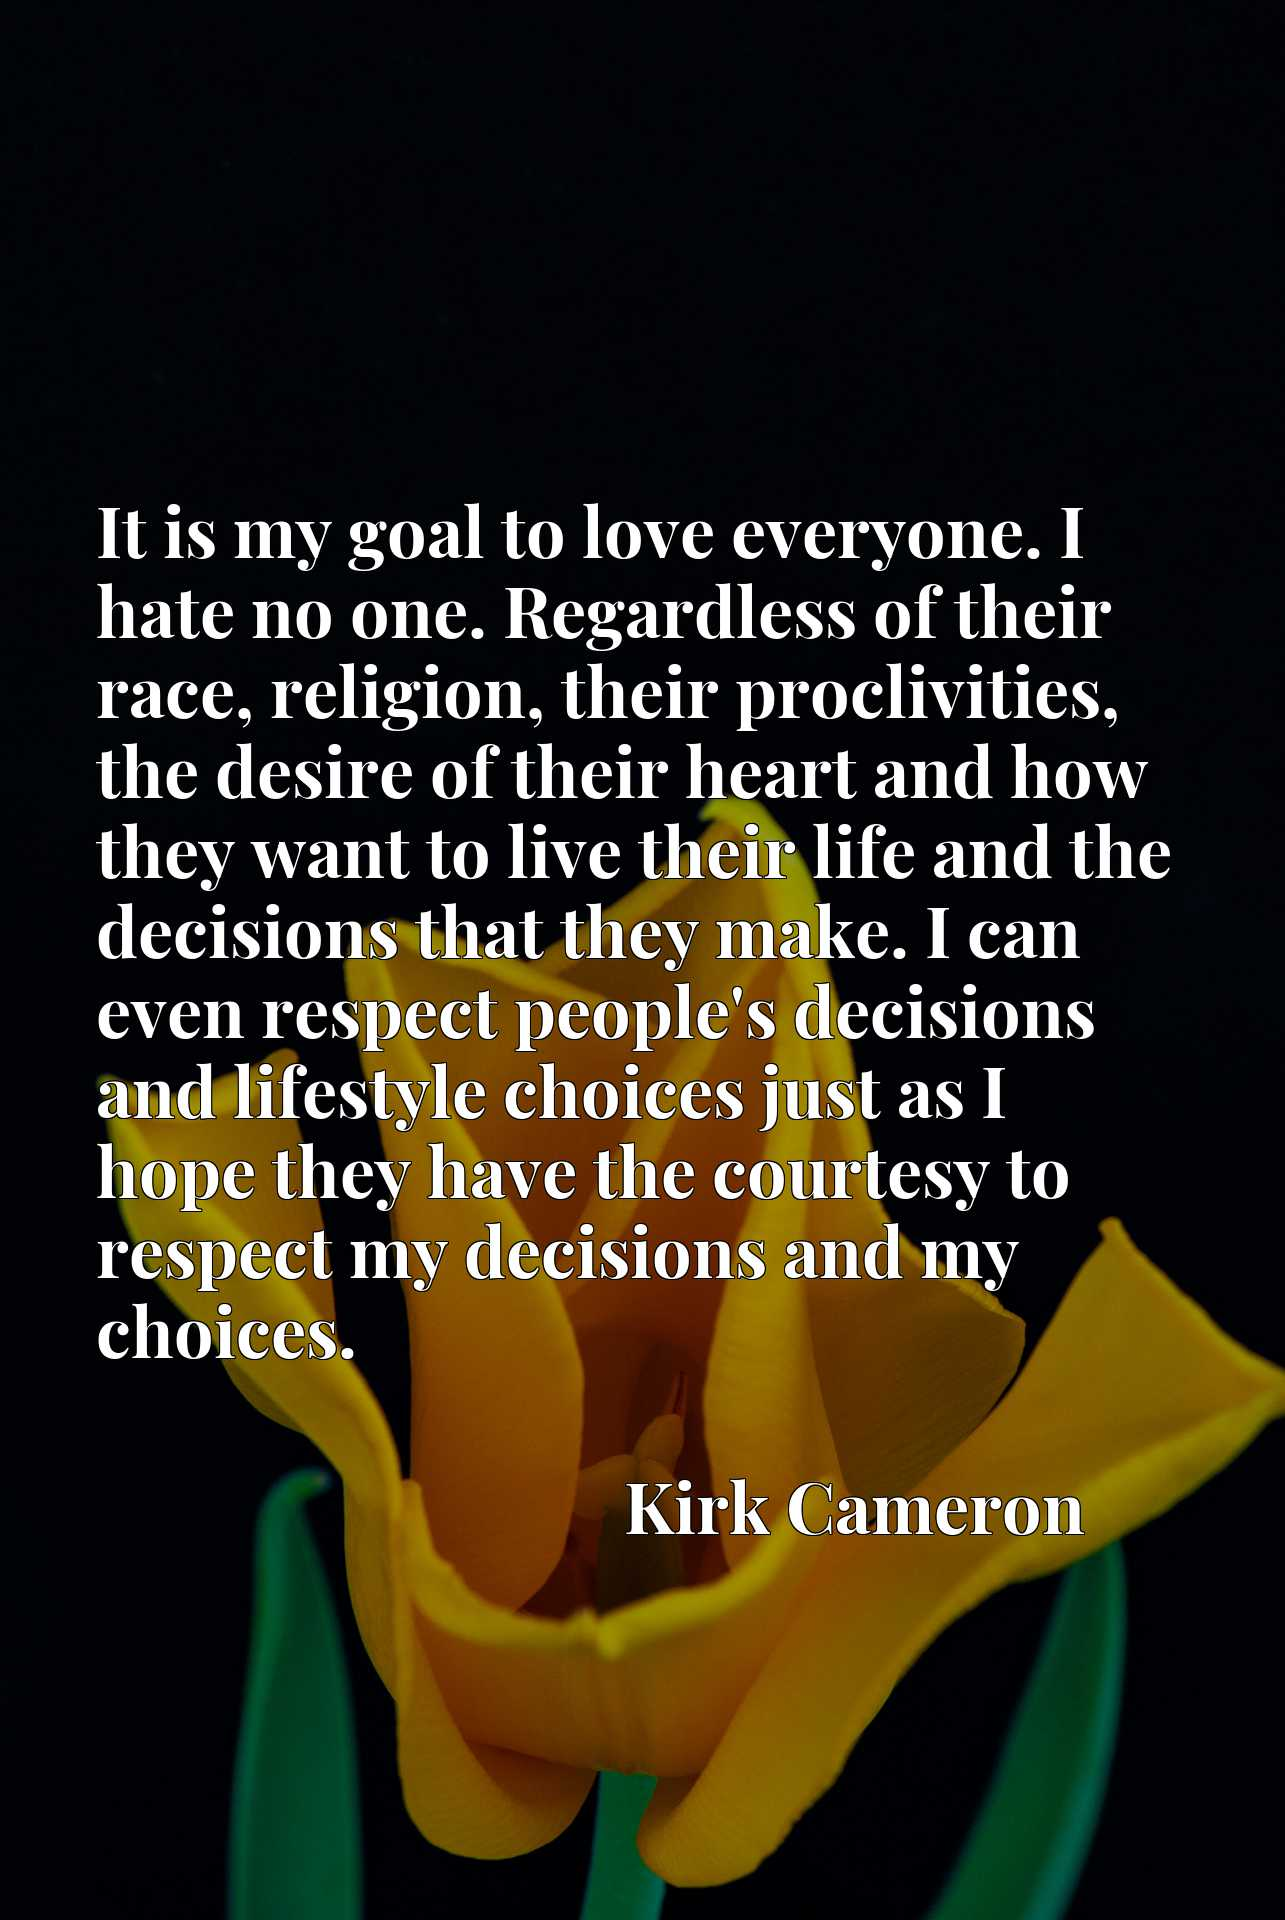 It is my goal to love everyone. I hate no one. Regardless of their race, religion, their proclivities, the desire of their heart and how they want to live their life and the decisions that they make. I can even respect people's decisions and lifestyle choices just as I hope they have the courtesy to respect my decisions and my choices.